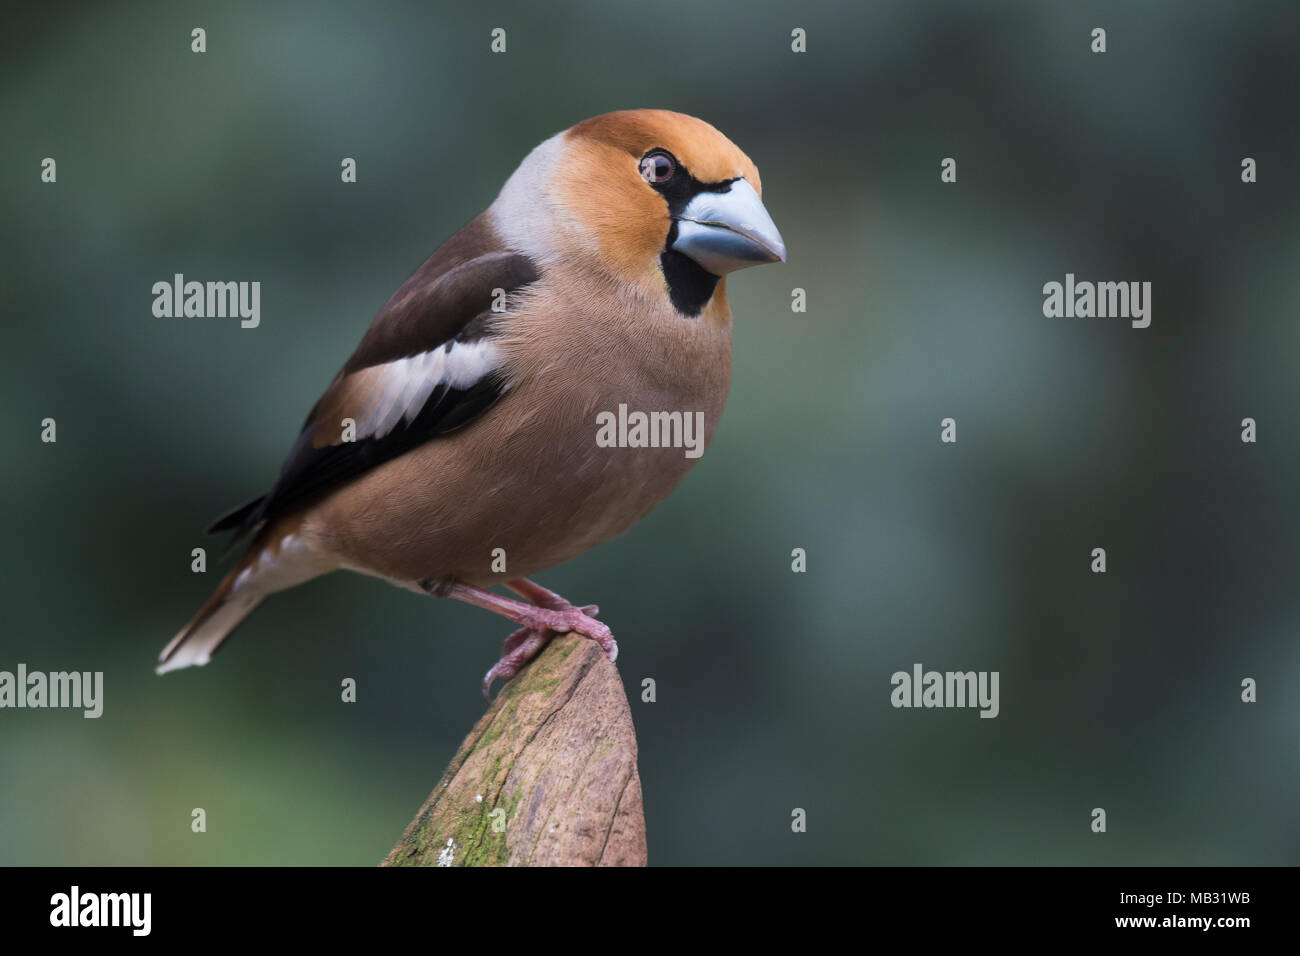 Hawfinch (Coccothraustes coccothraustes) sits on Totholz, Emsland, Lower Saxony, Germany - Stock Image